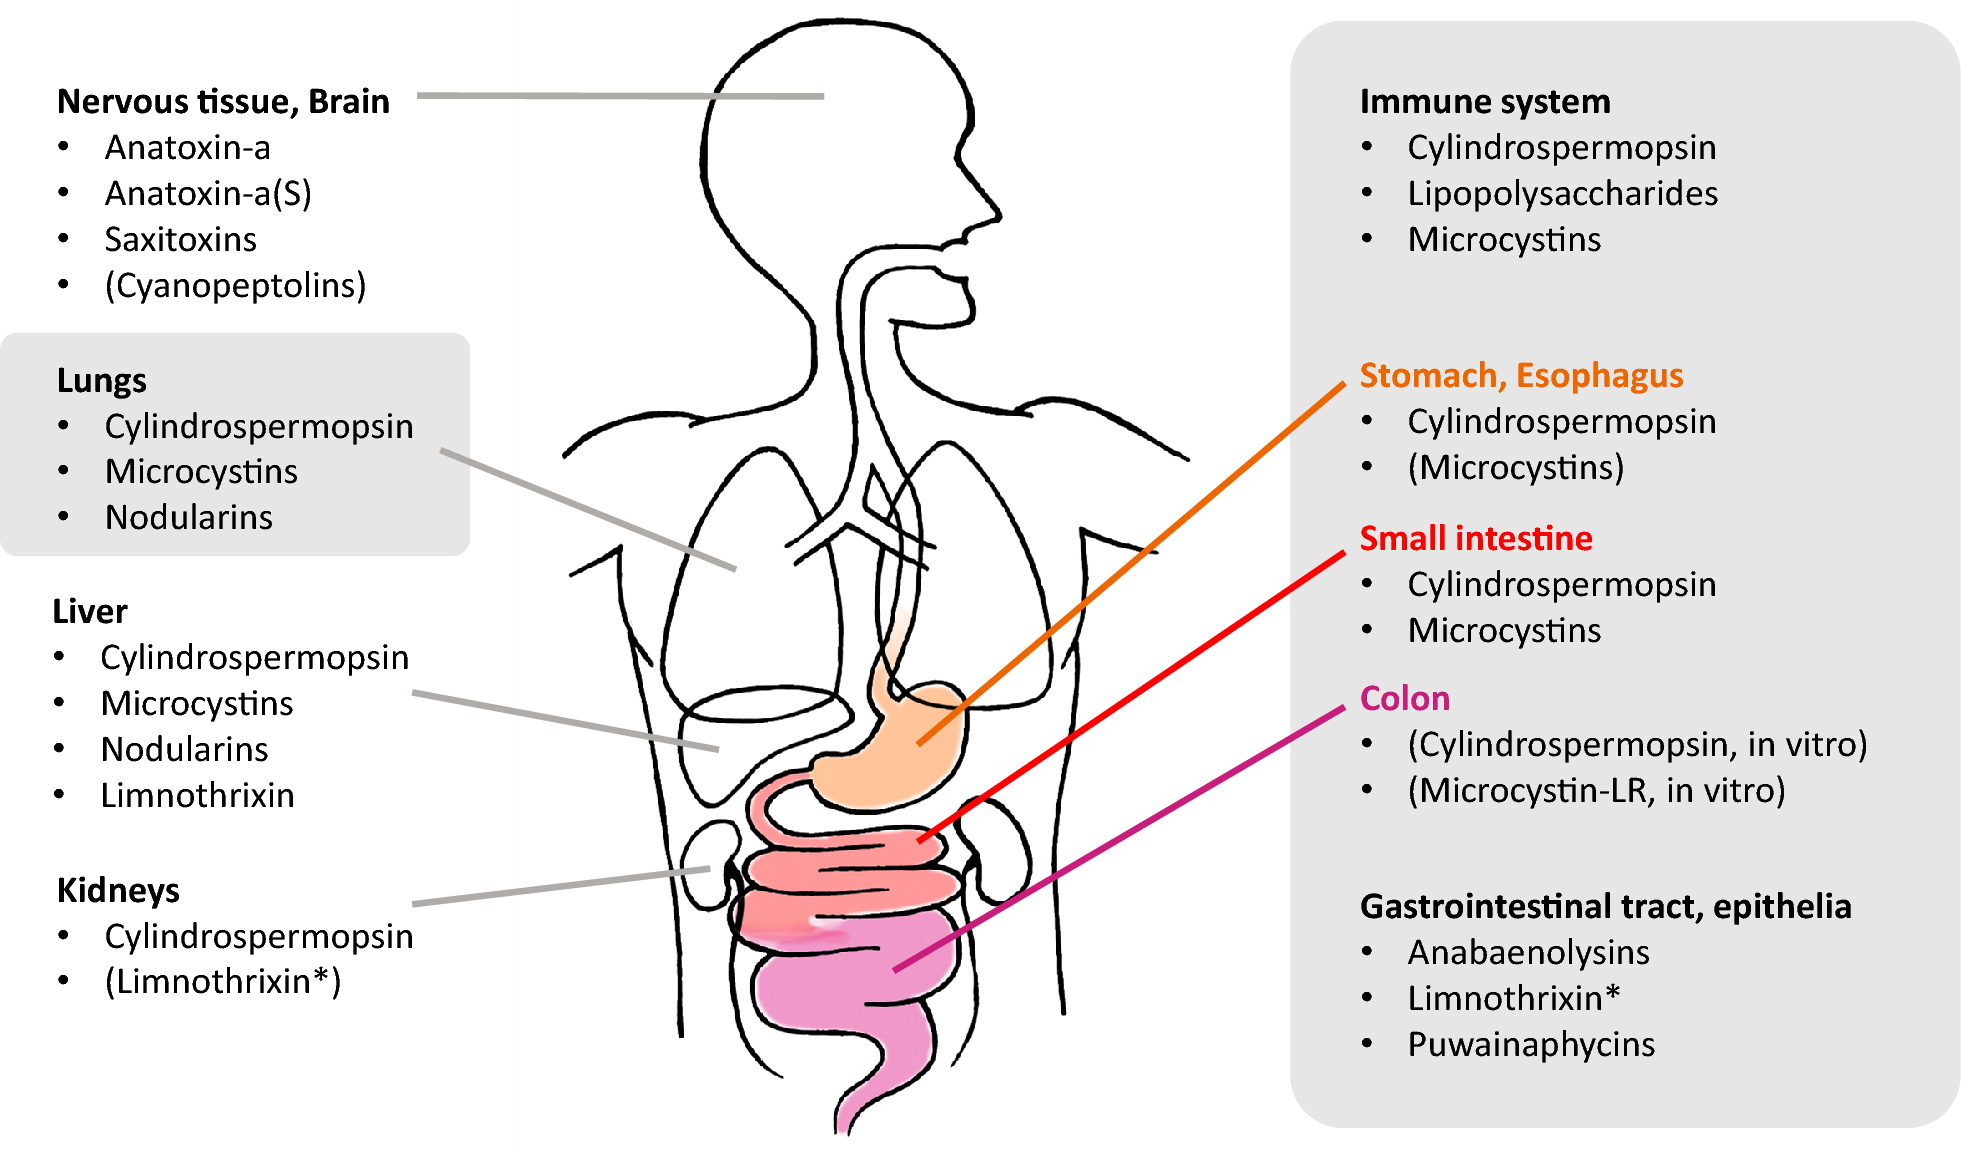 Immune System And Gastrointestinal >> Effects Of Cyanobacterial Toxins On The Human Gastrointestinal Tract